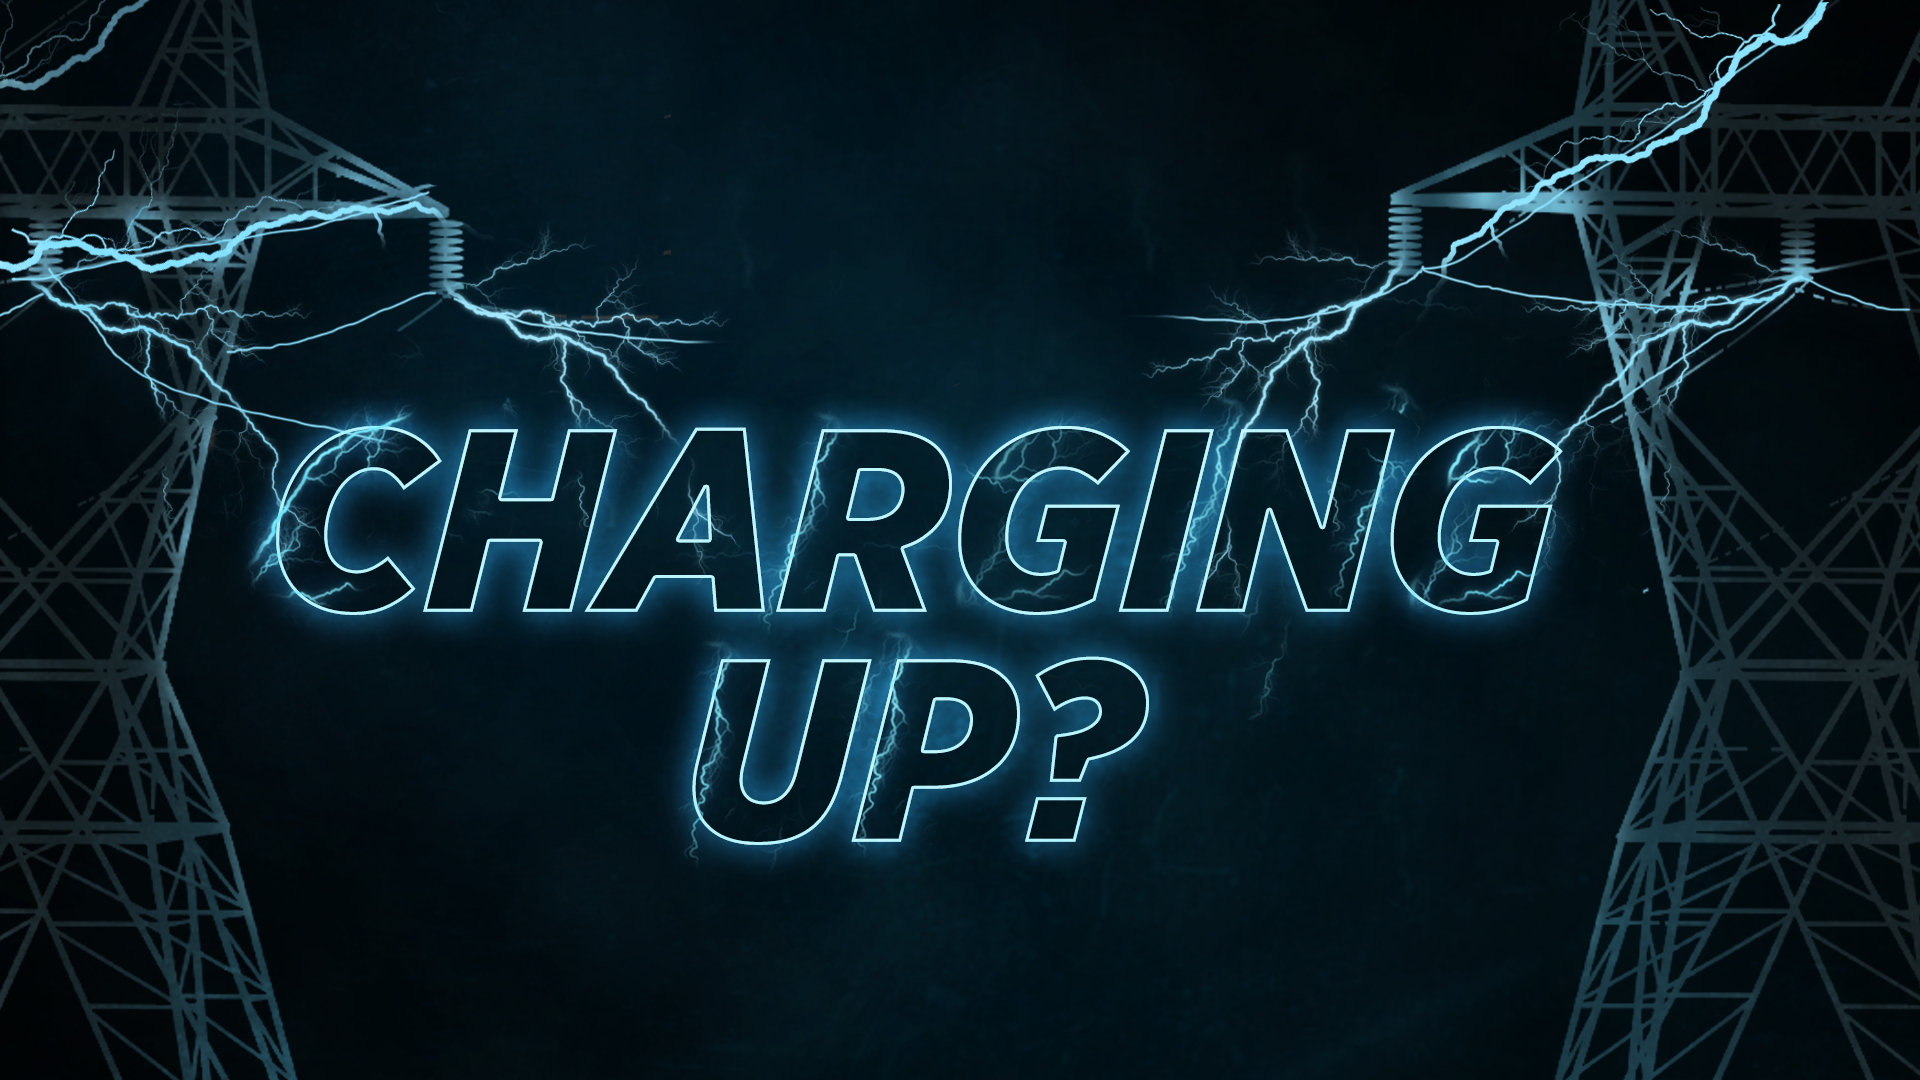 20653857_MM_MF_CHARGING_UP3.png